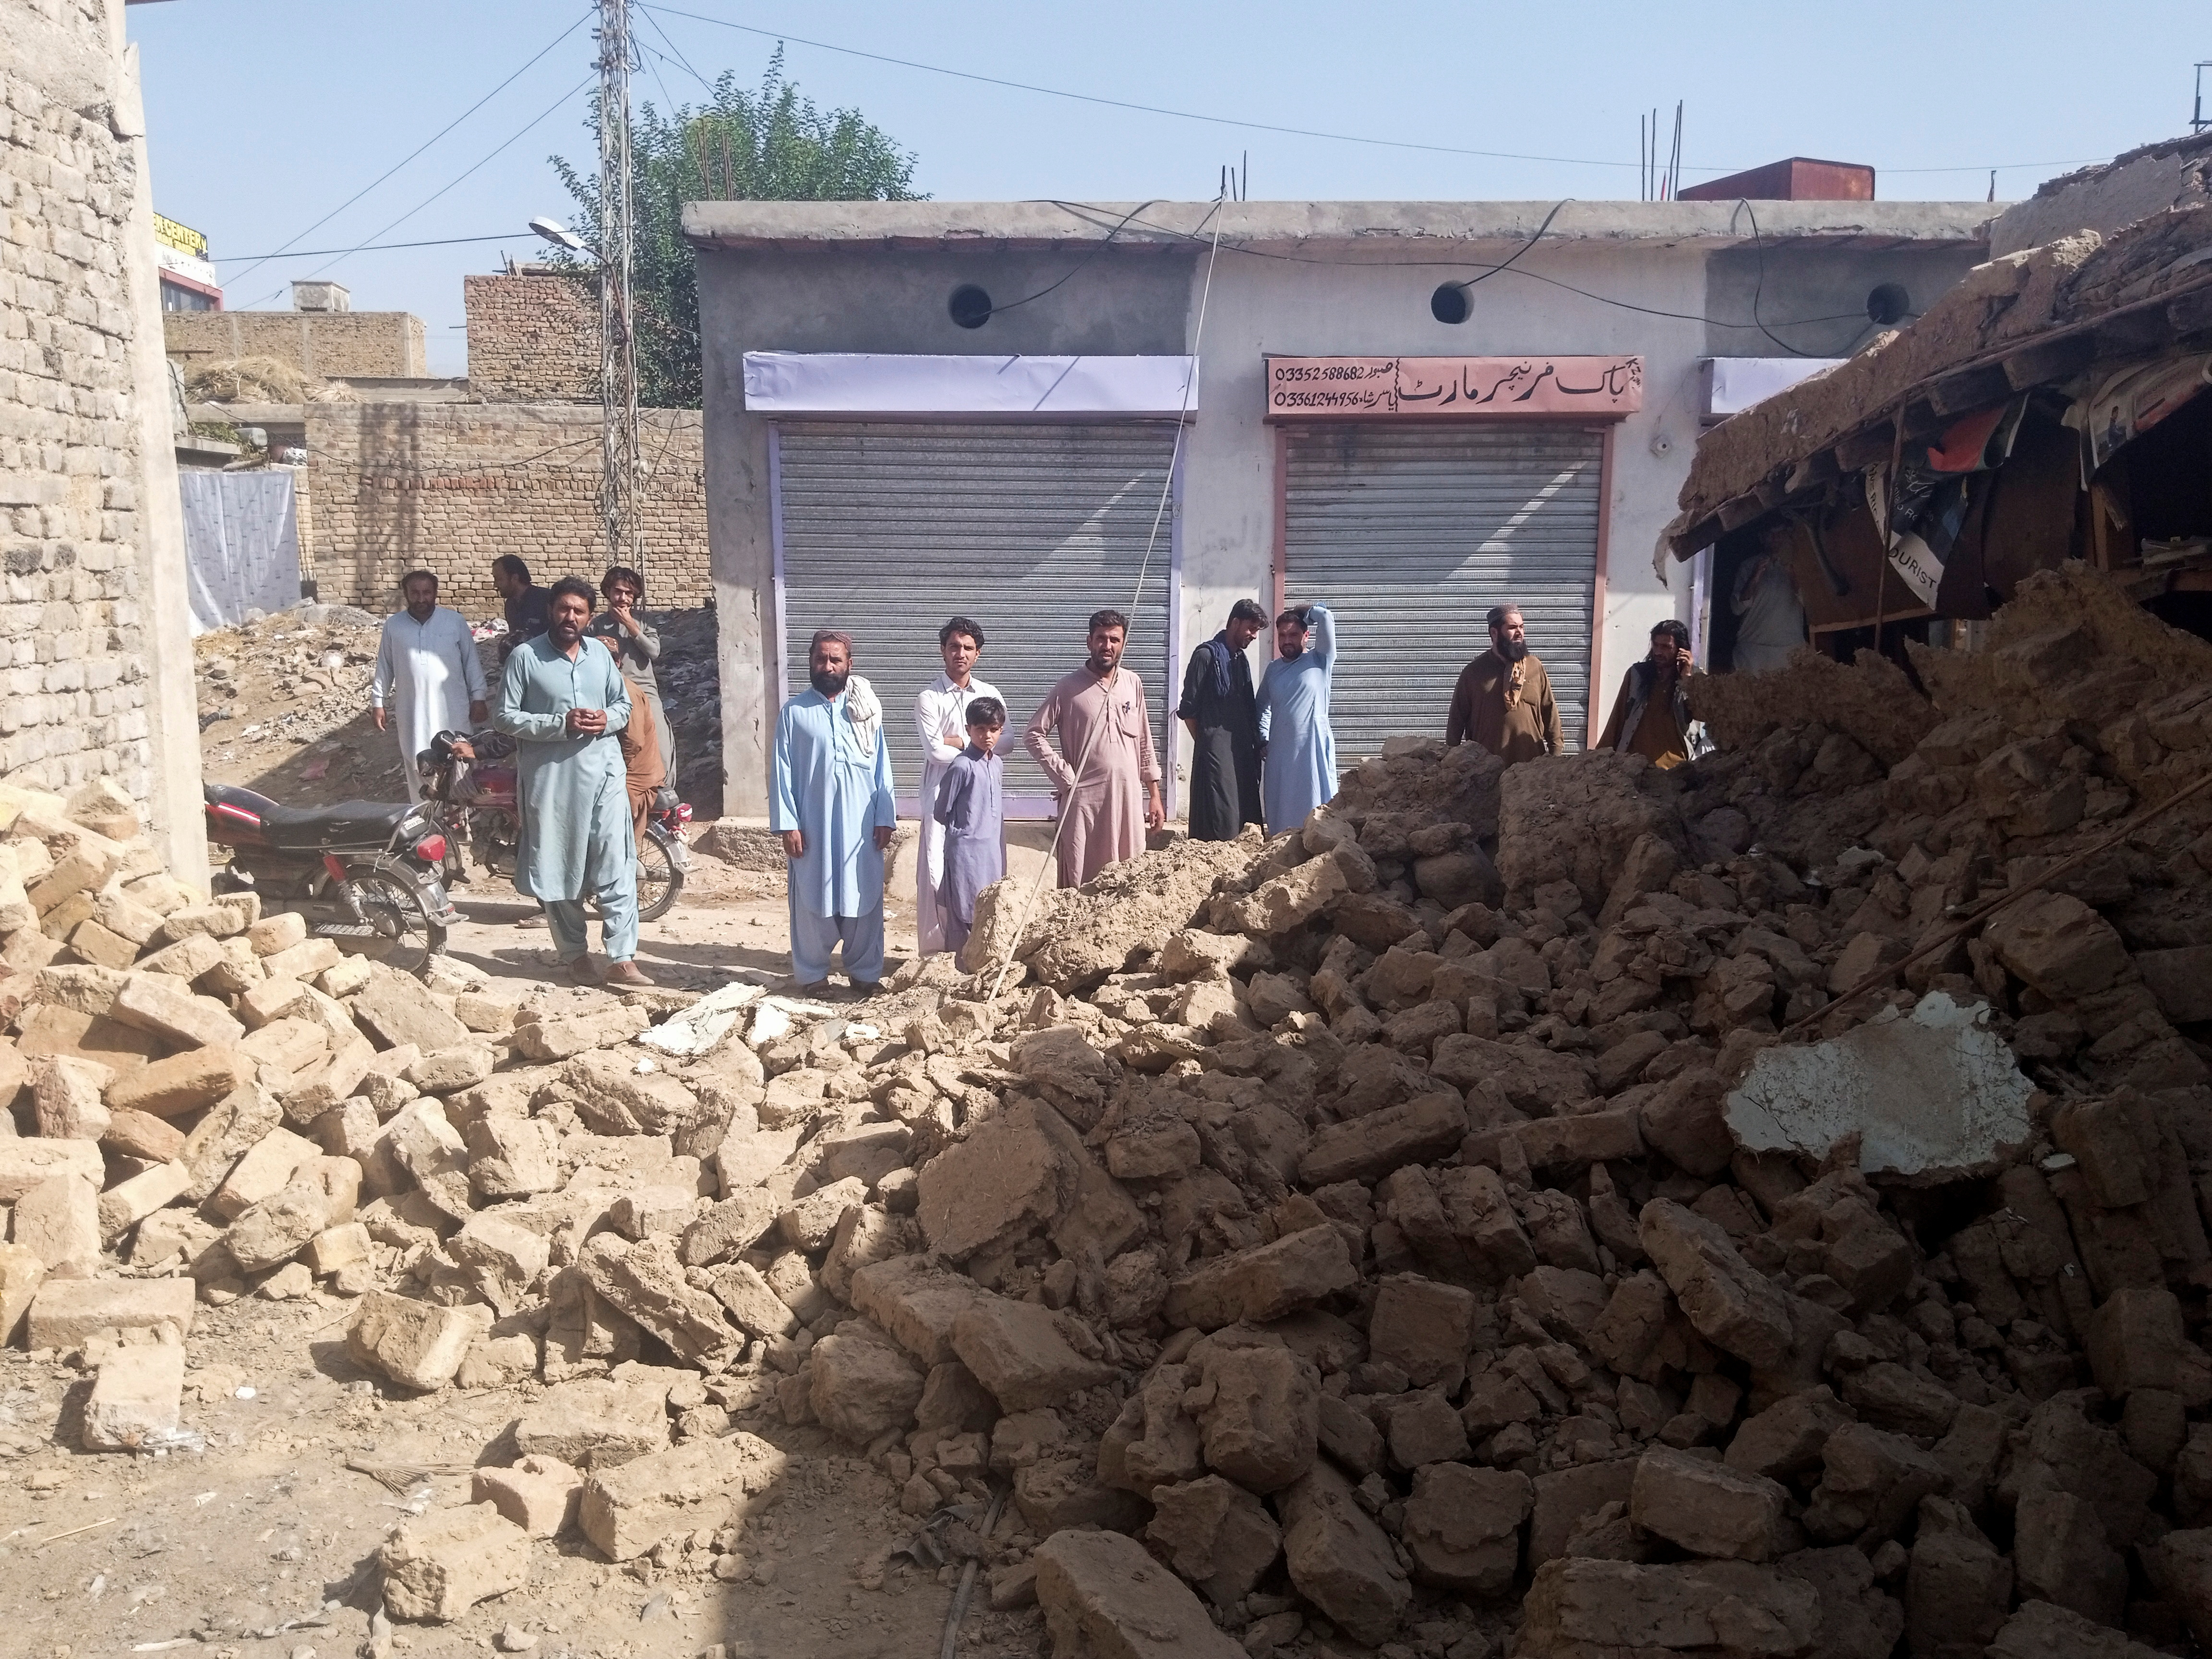 Residents gather near the rubble of a damaged house following an earthquake in Harnai, Balochistan, Pakistan, October 7, 2021. REUTERS/Naseer Ahmed